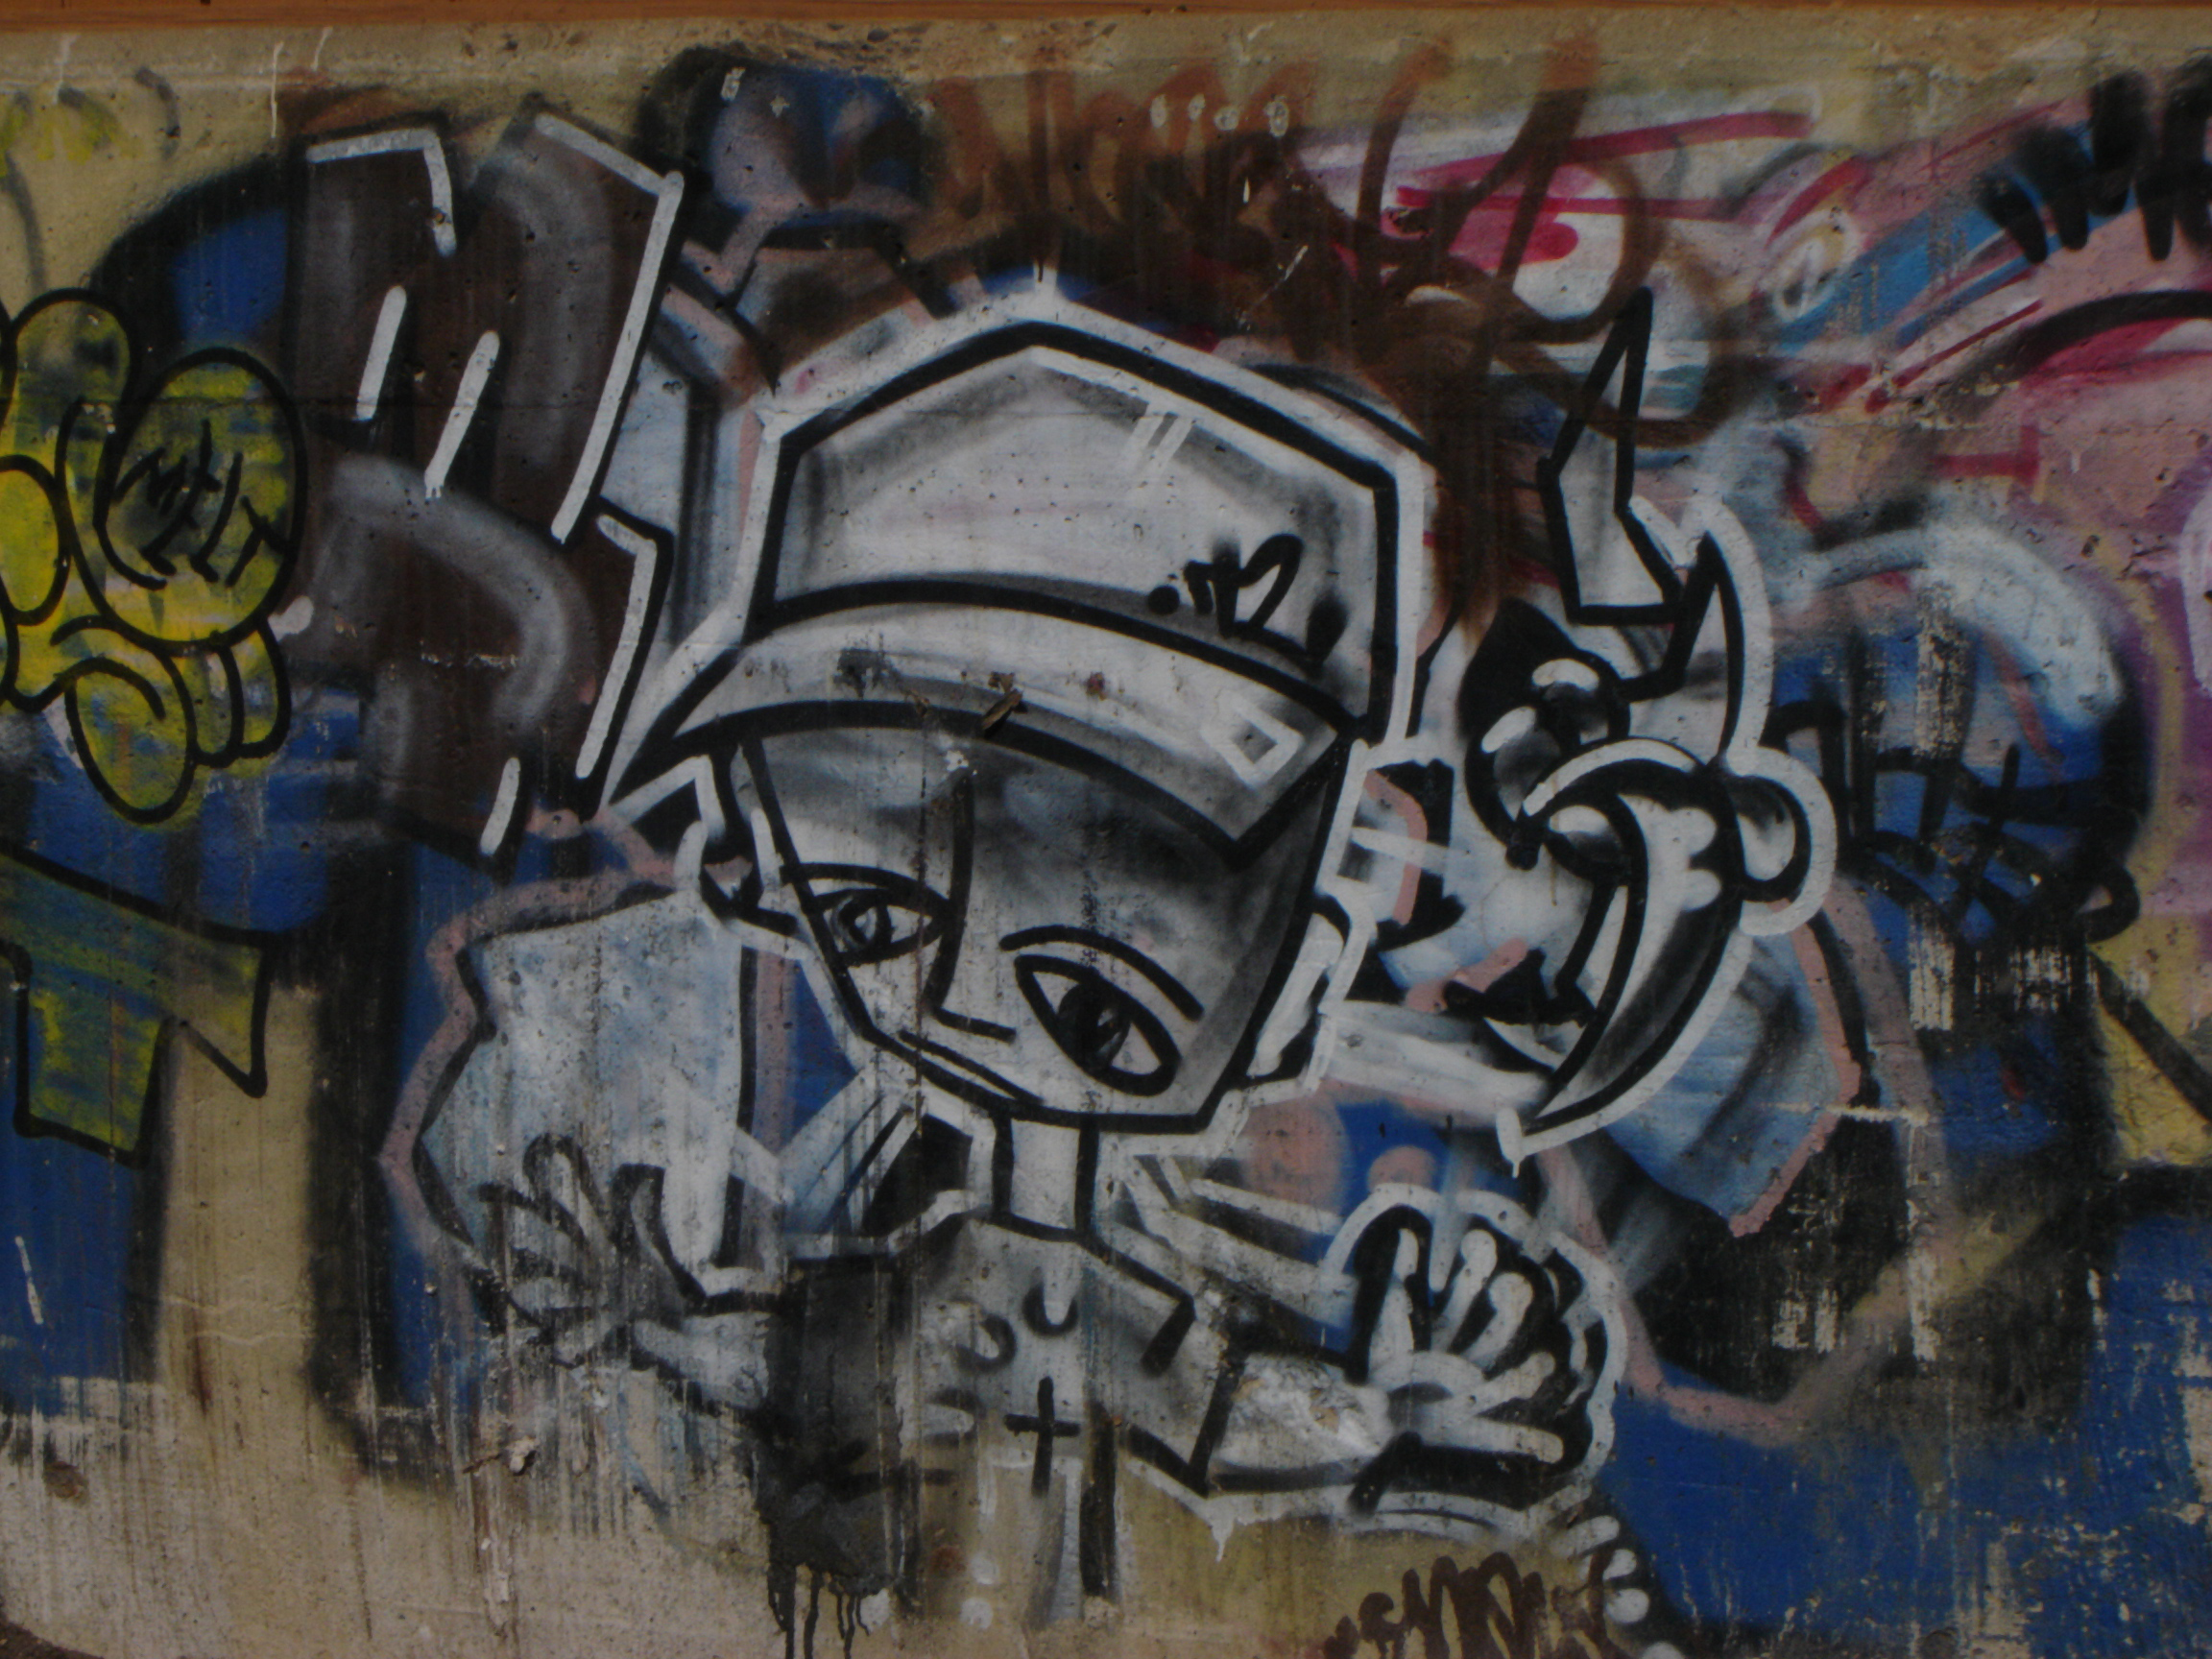 graffiti 3 by Lovelystock